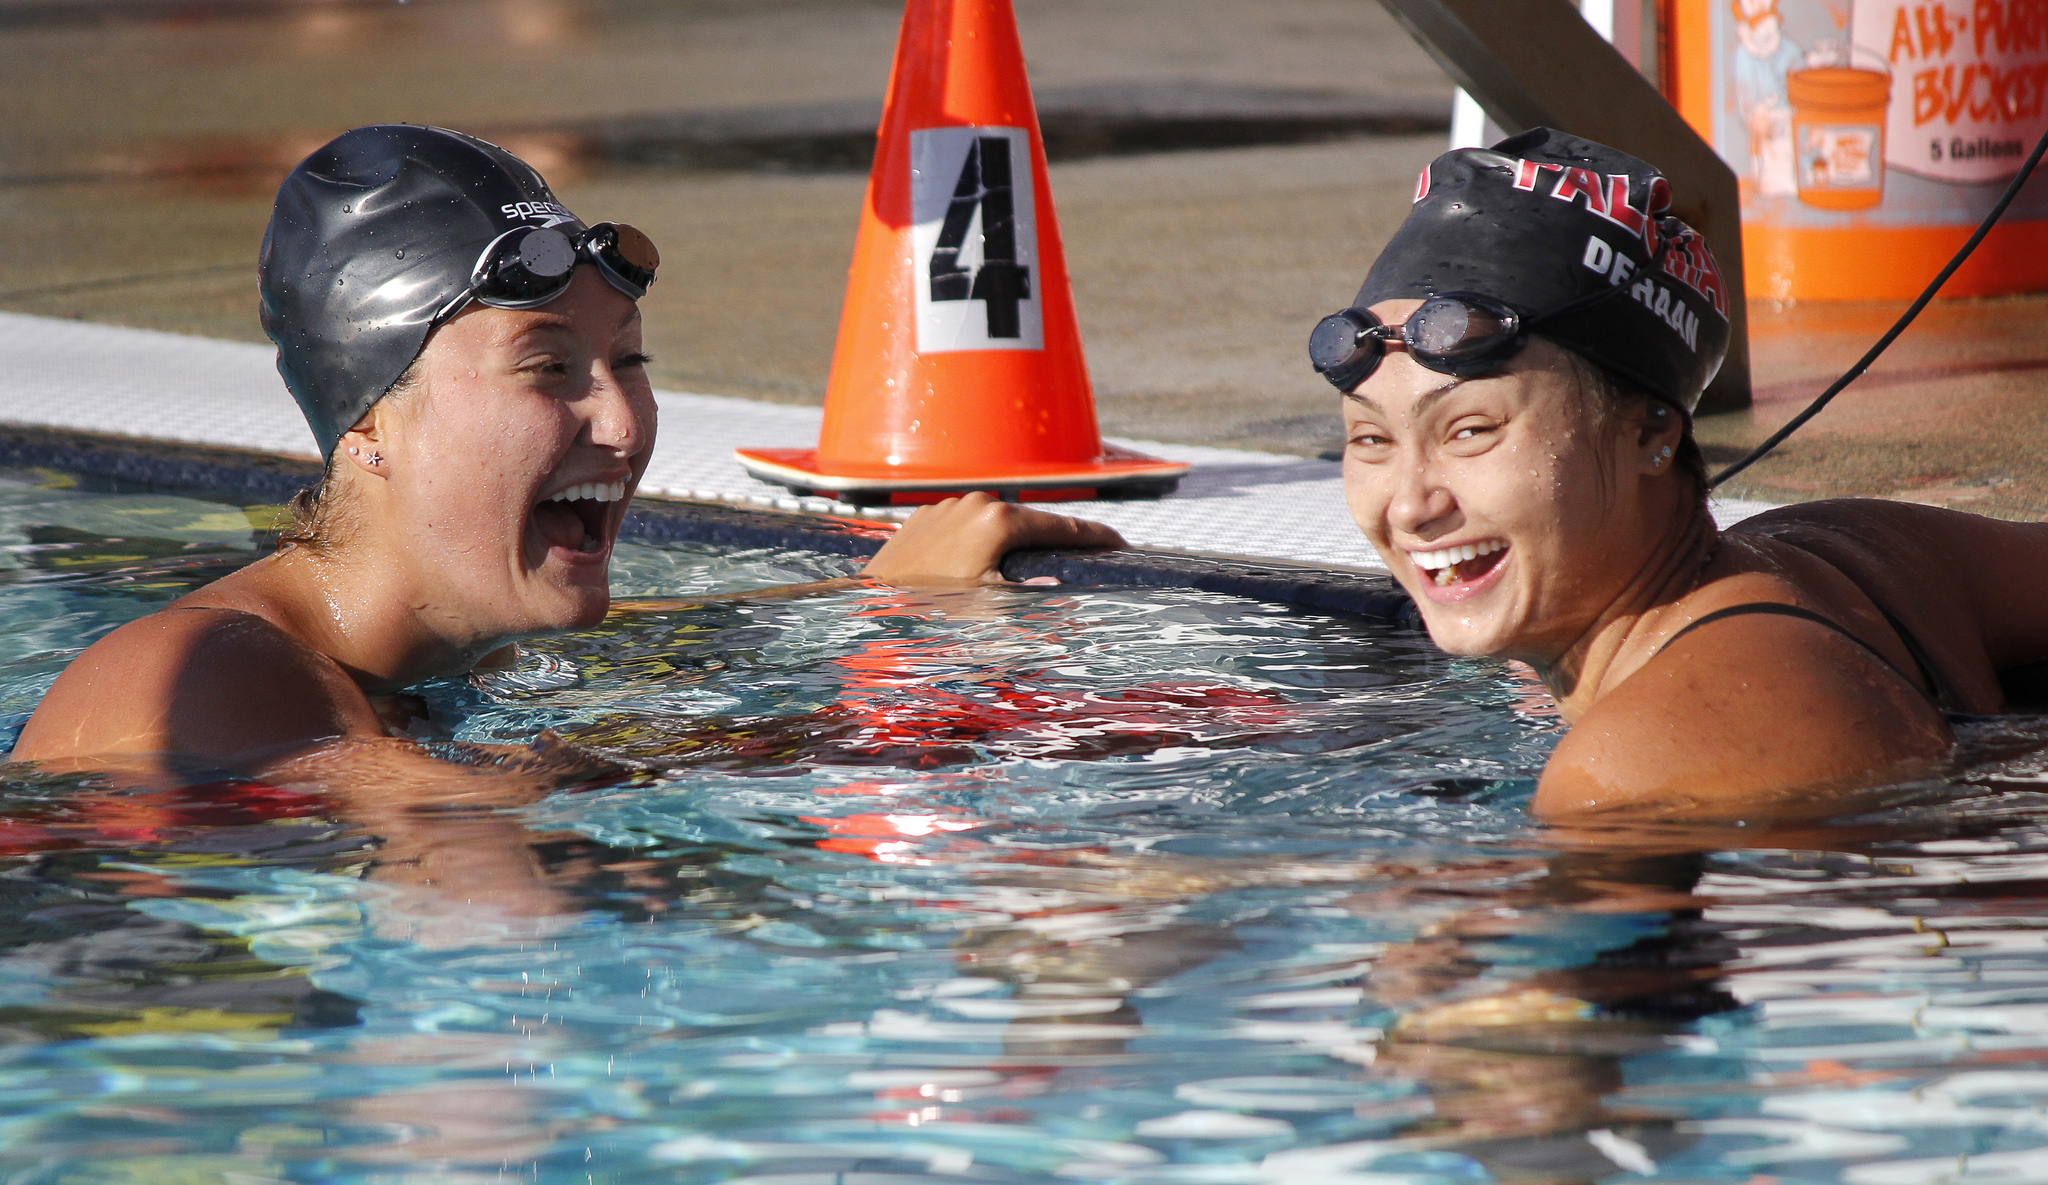 Palomar's Michelle Jacob (L) and Paulina DeHaan (R) are all smiles after swimming the Women's 100 Yard Backstroke championship final during the 2016 PCAC Swim Meet on April 22 at the Wallace Memorial Pool. Jacob placed first with a time of 1.01.68 and DeHaan placed second with a time of 1.04.30. Coleen Burnham/The Telescope